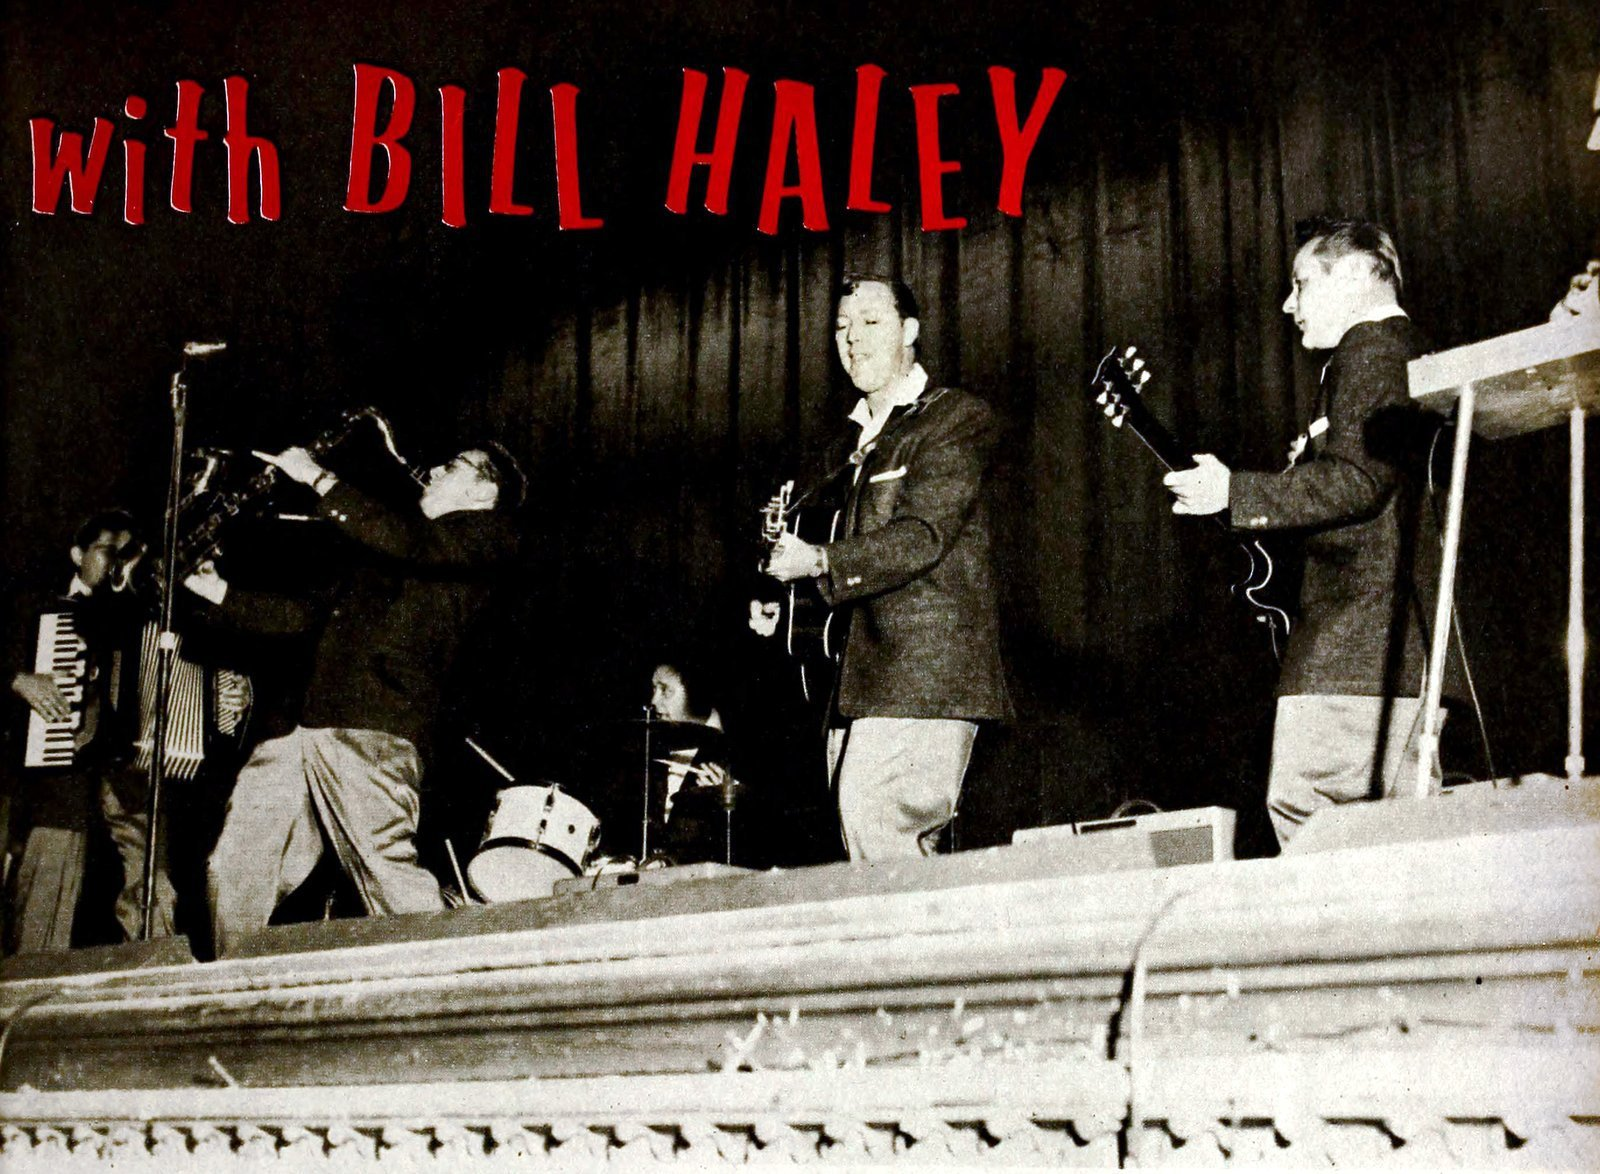 Rocking around with Bill Haley - 1957 (1)